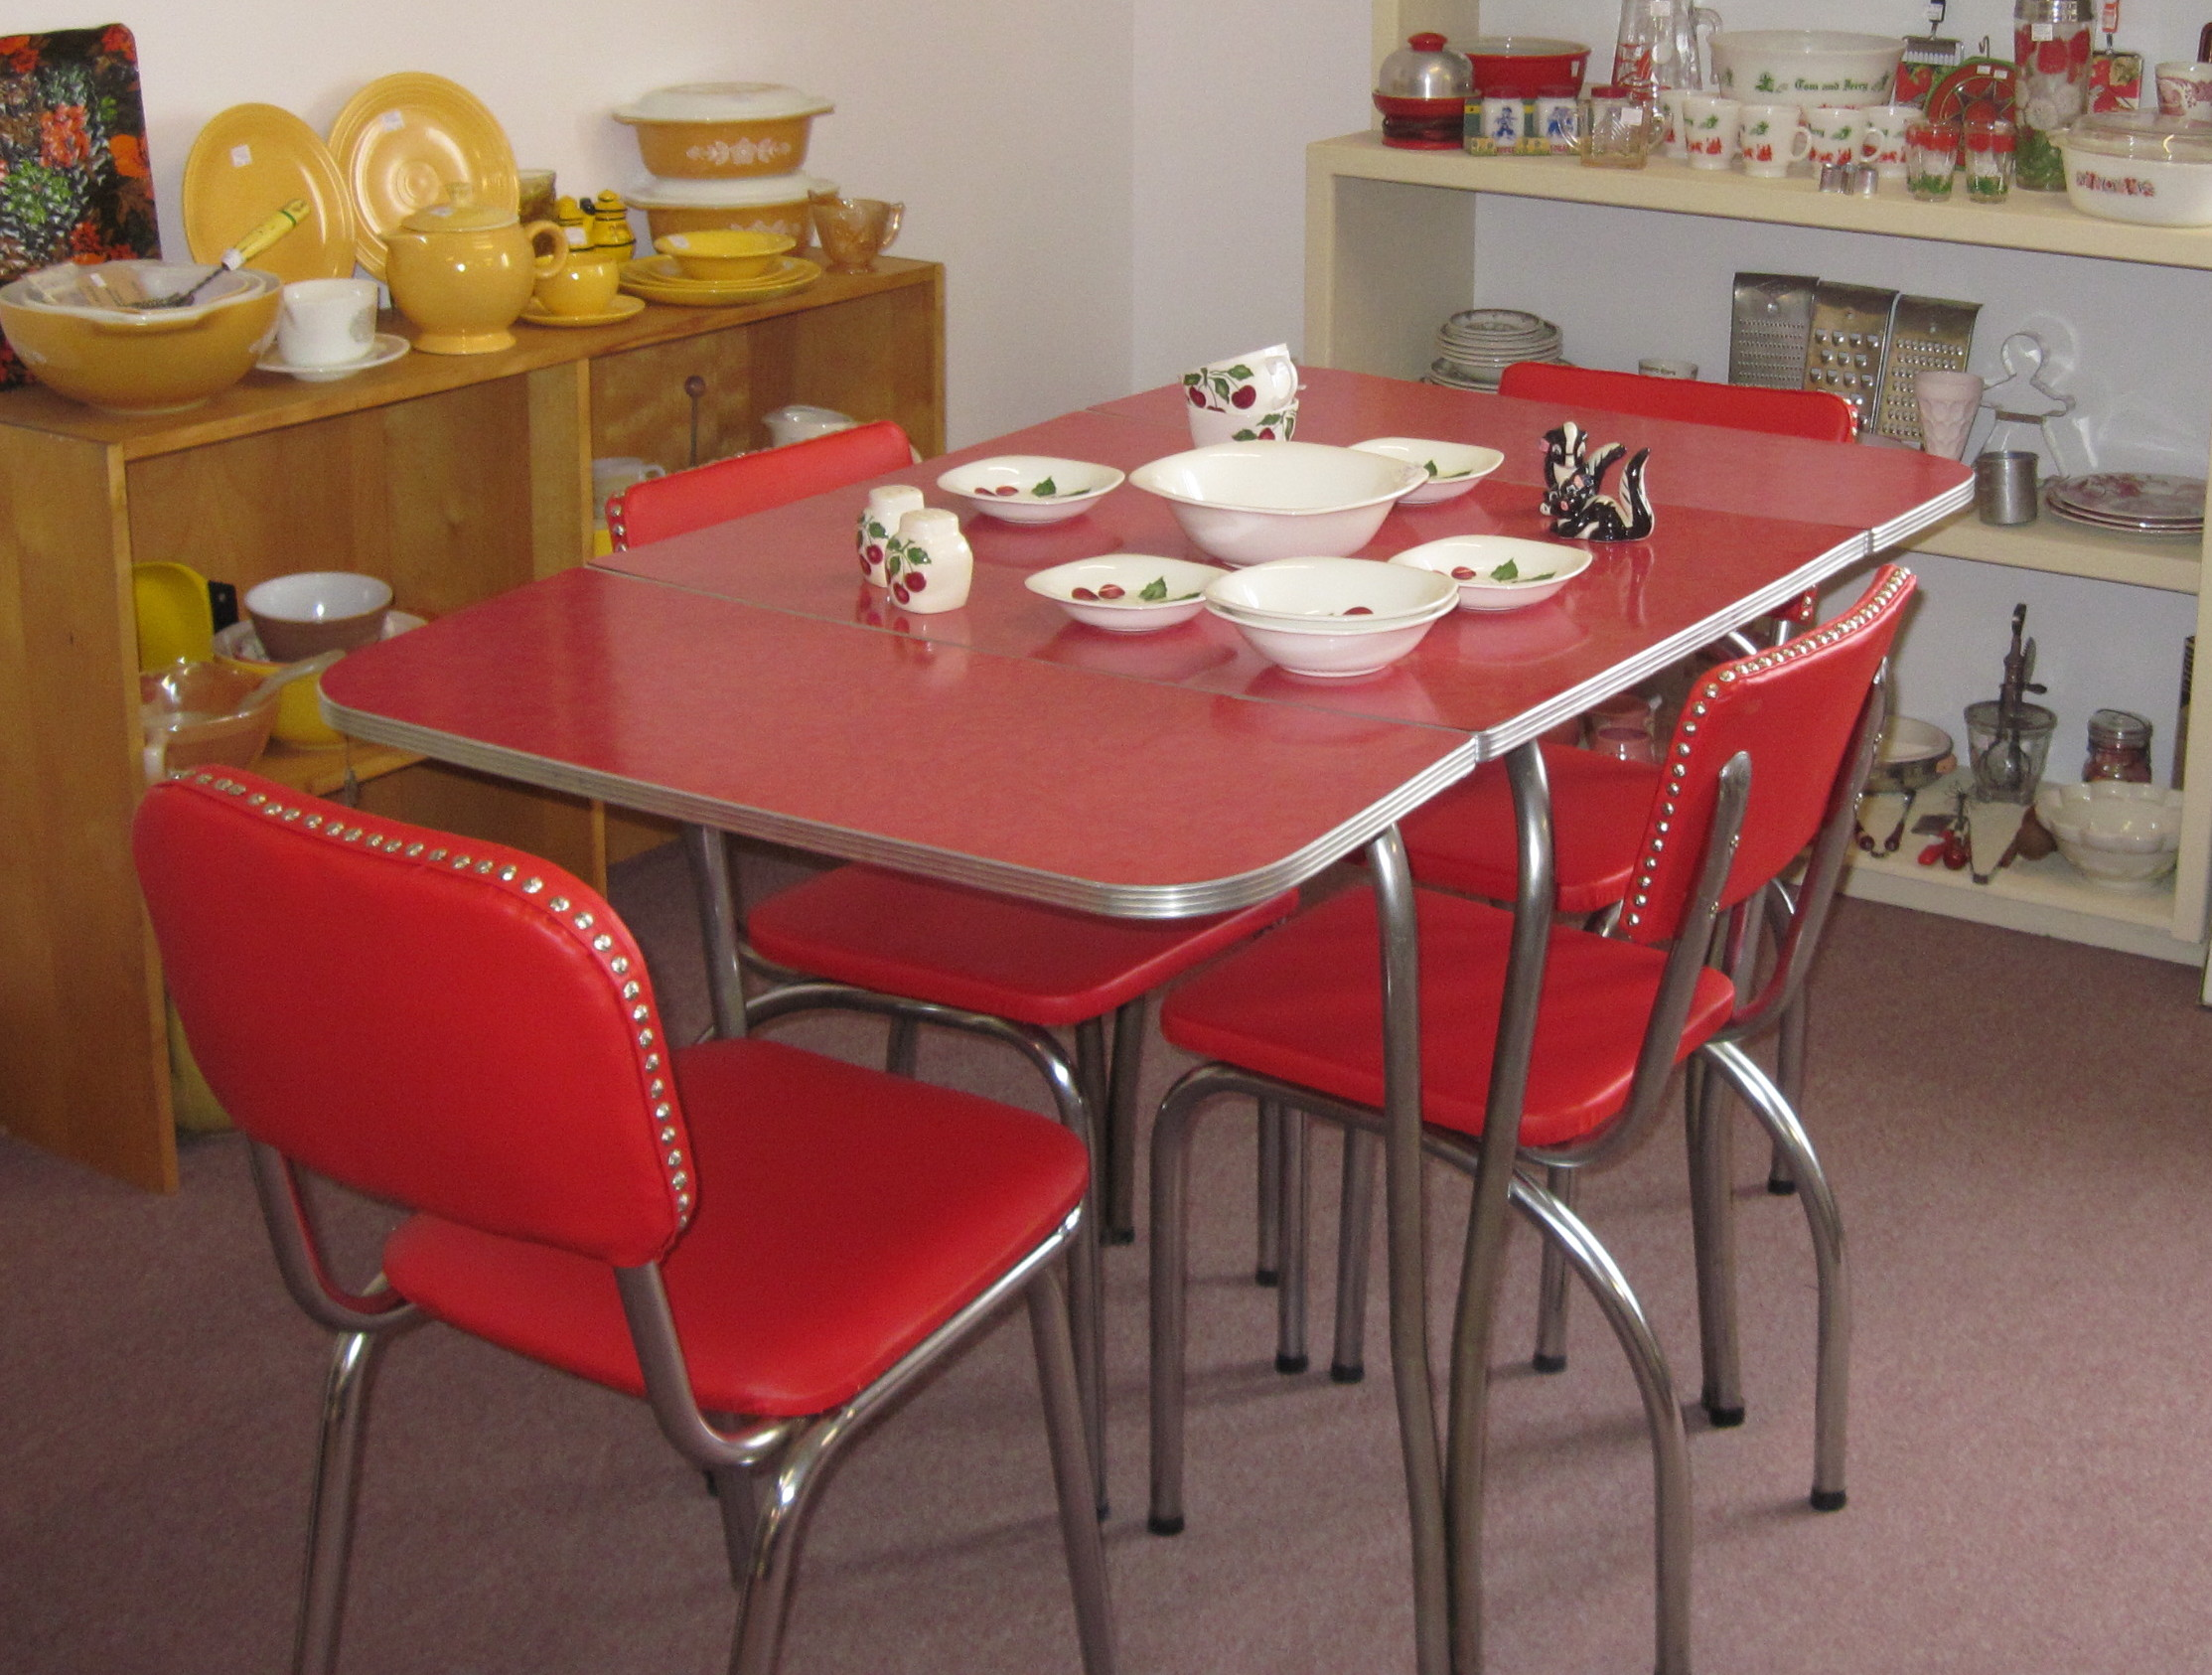 1950 s red cracked ice dining set fabfindsblog - Table cuisine formica annee 50 ...